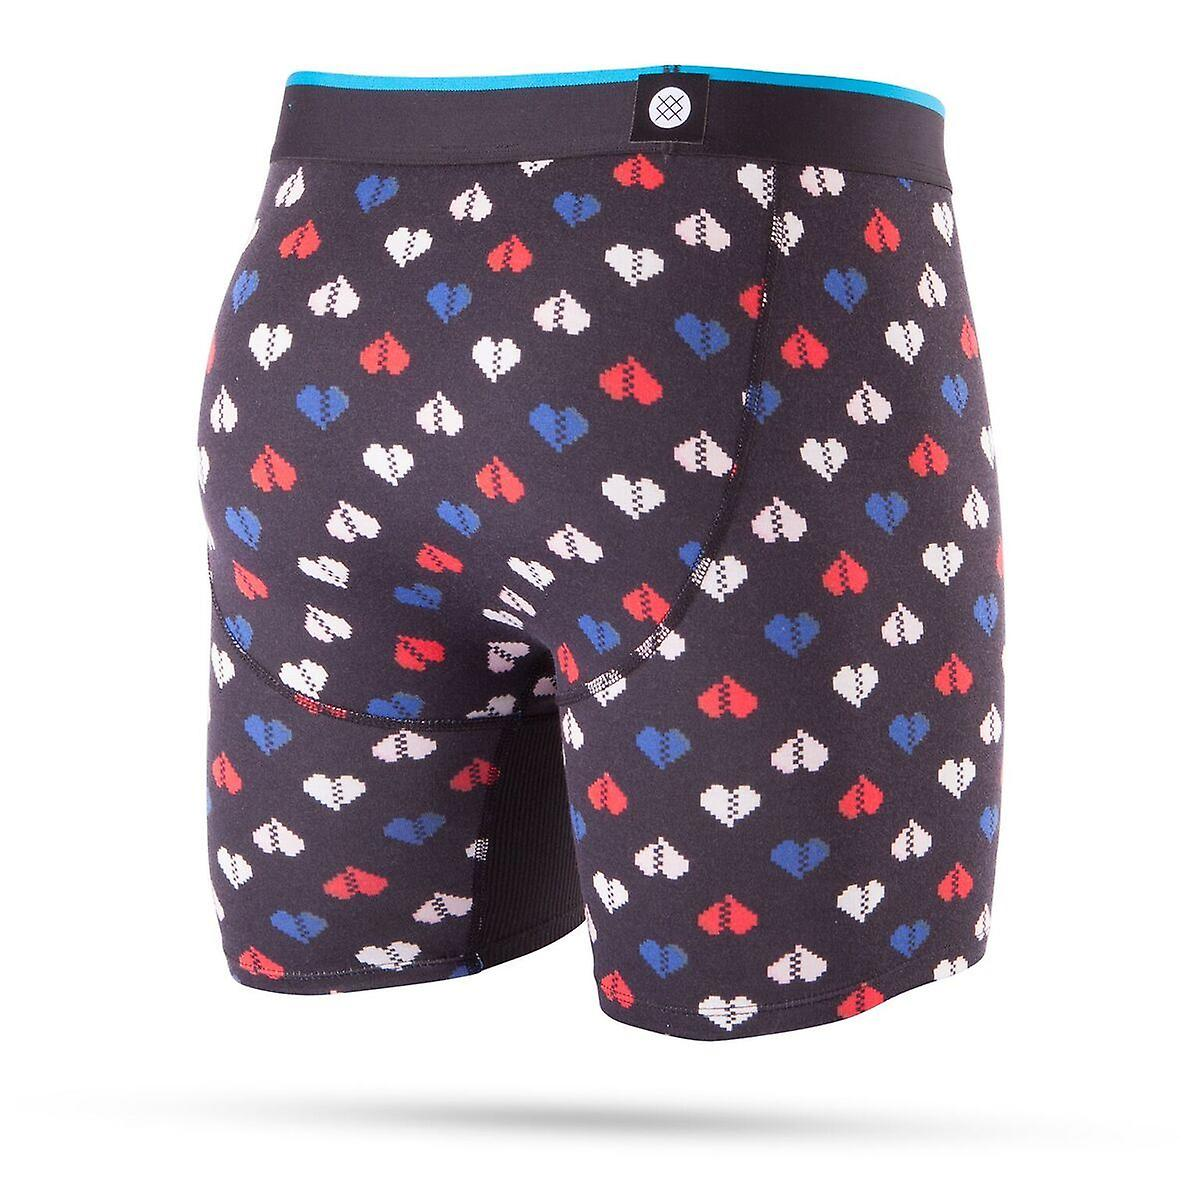 Stance Boxer Brief ~ Game Over